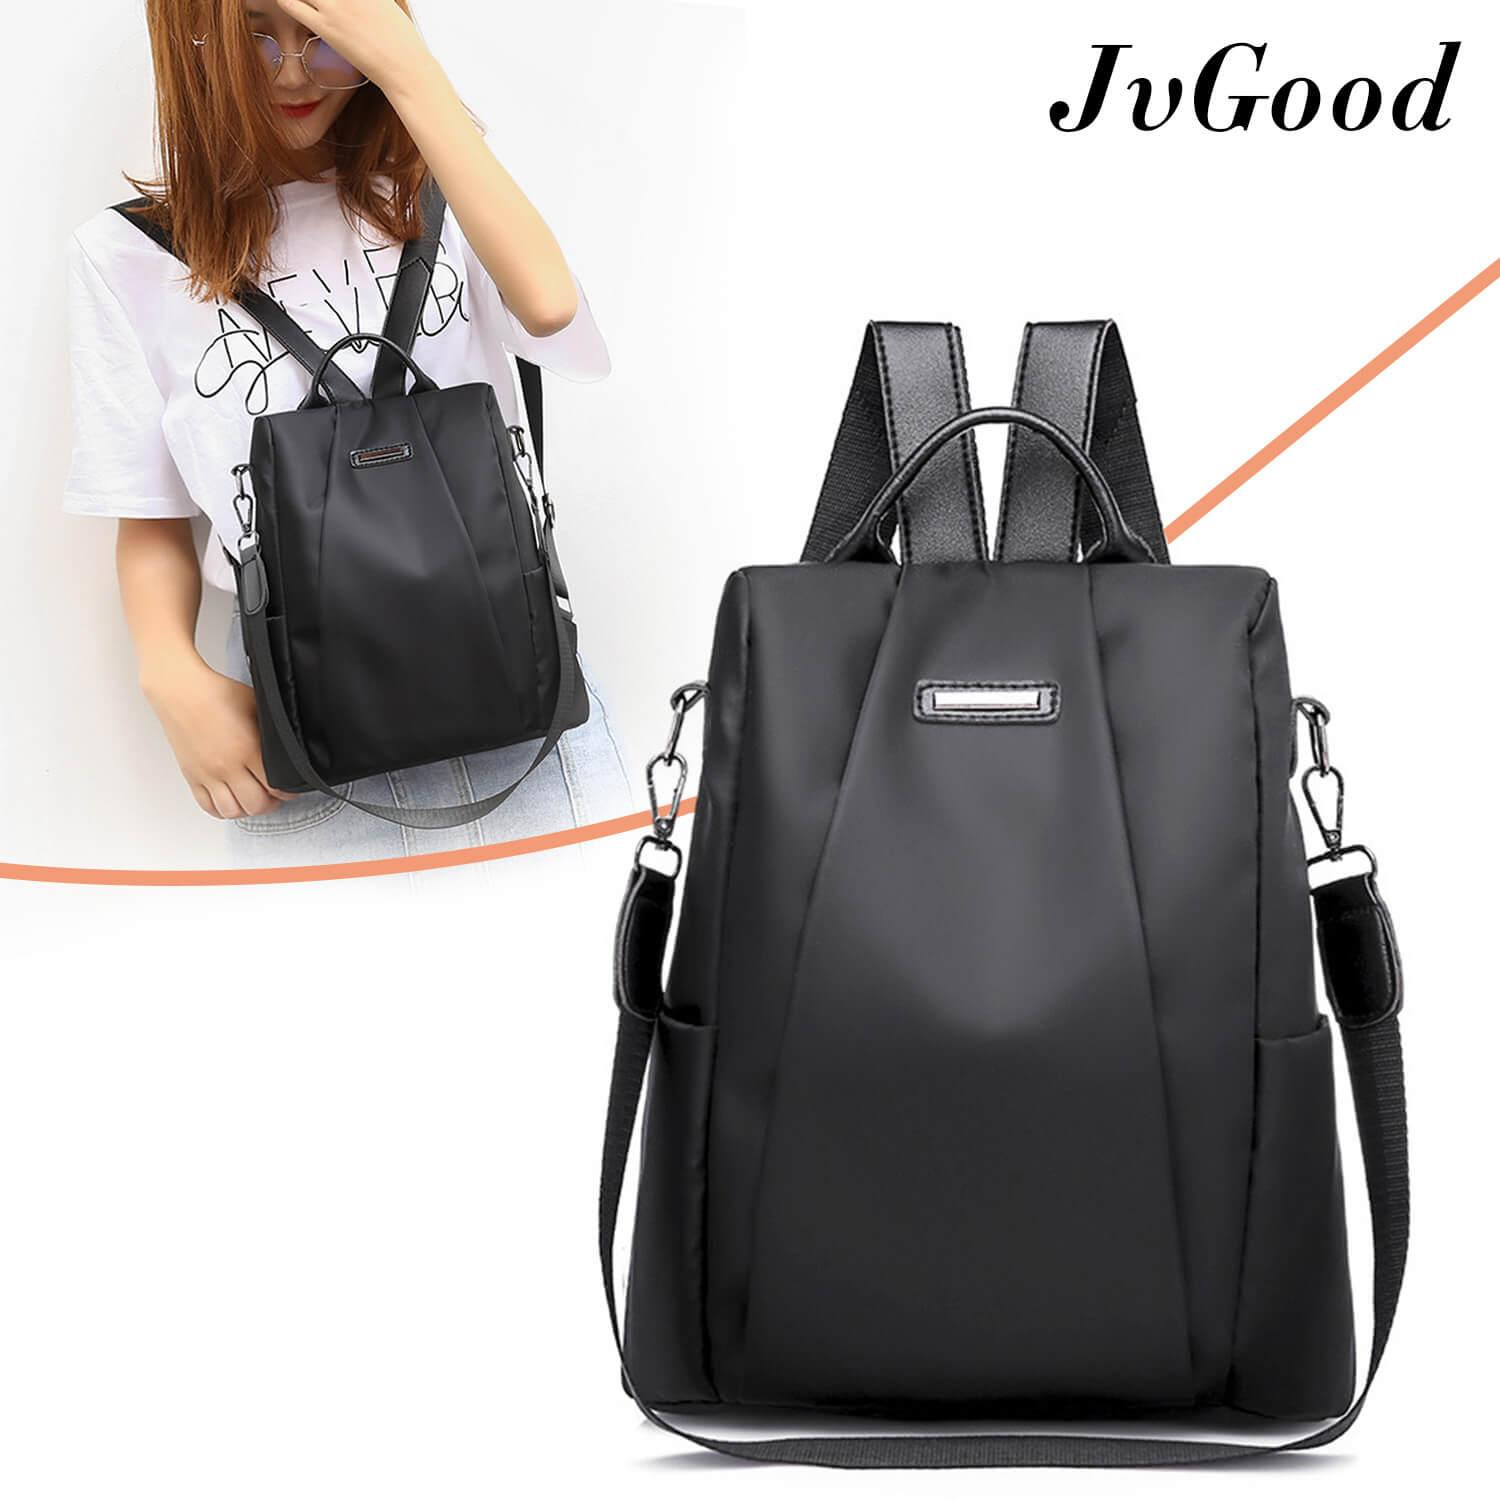 JvGood กระเป๋าสะพายหลัง กระเป๋าเป้ กระเป๋าแฟชั่นผู้หญิง Fashion Shoulder Bag Backpacks Laptop Computer Backpacks College School Bookbag  for Students Teenagers Ladies Waterproof Lightweight Oxford Daypack Anti-theft Bag